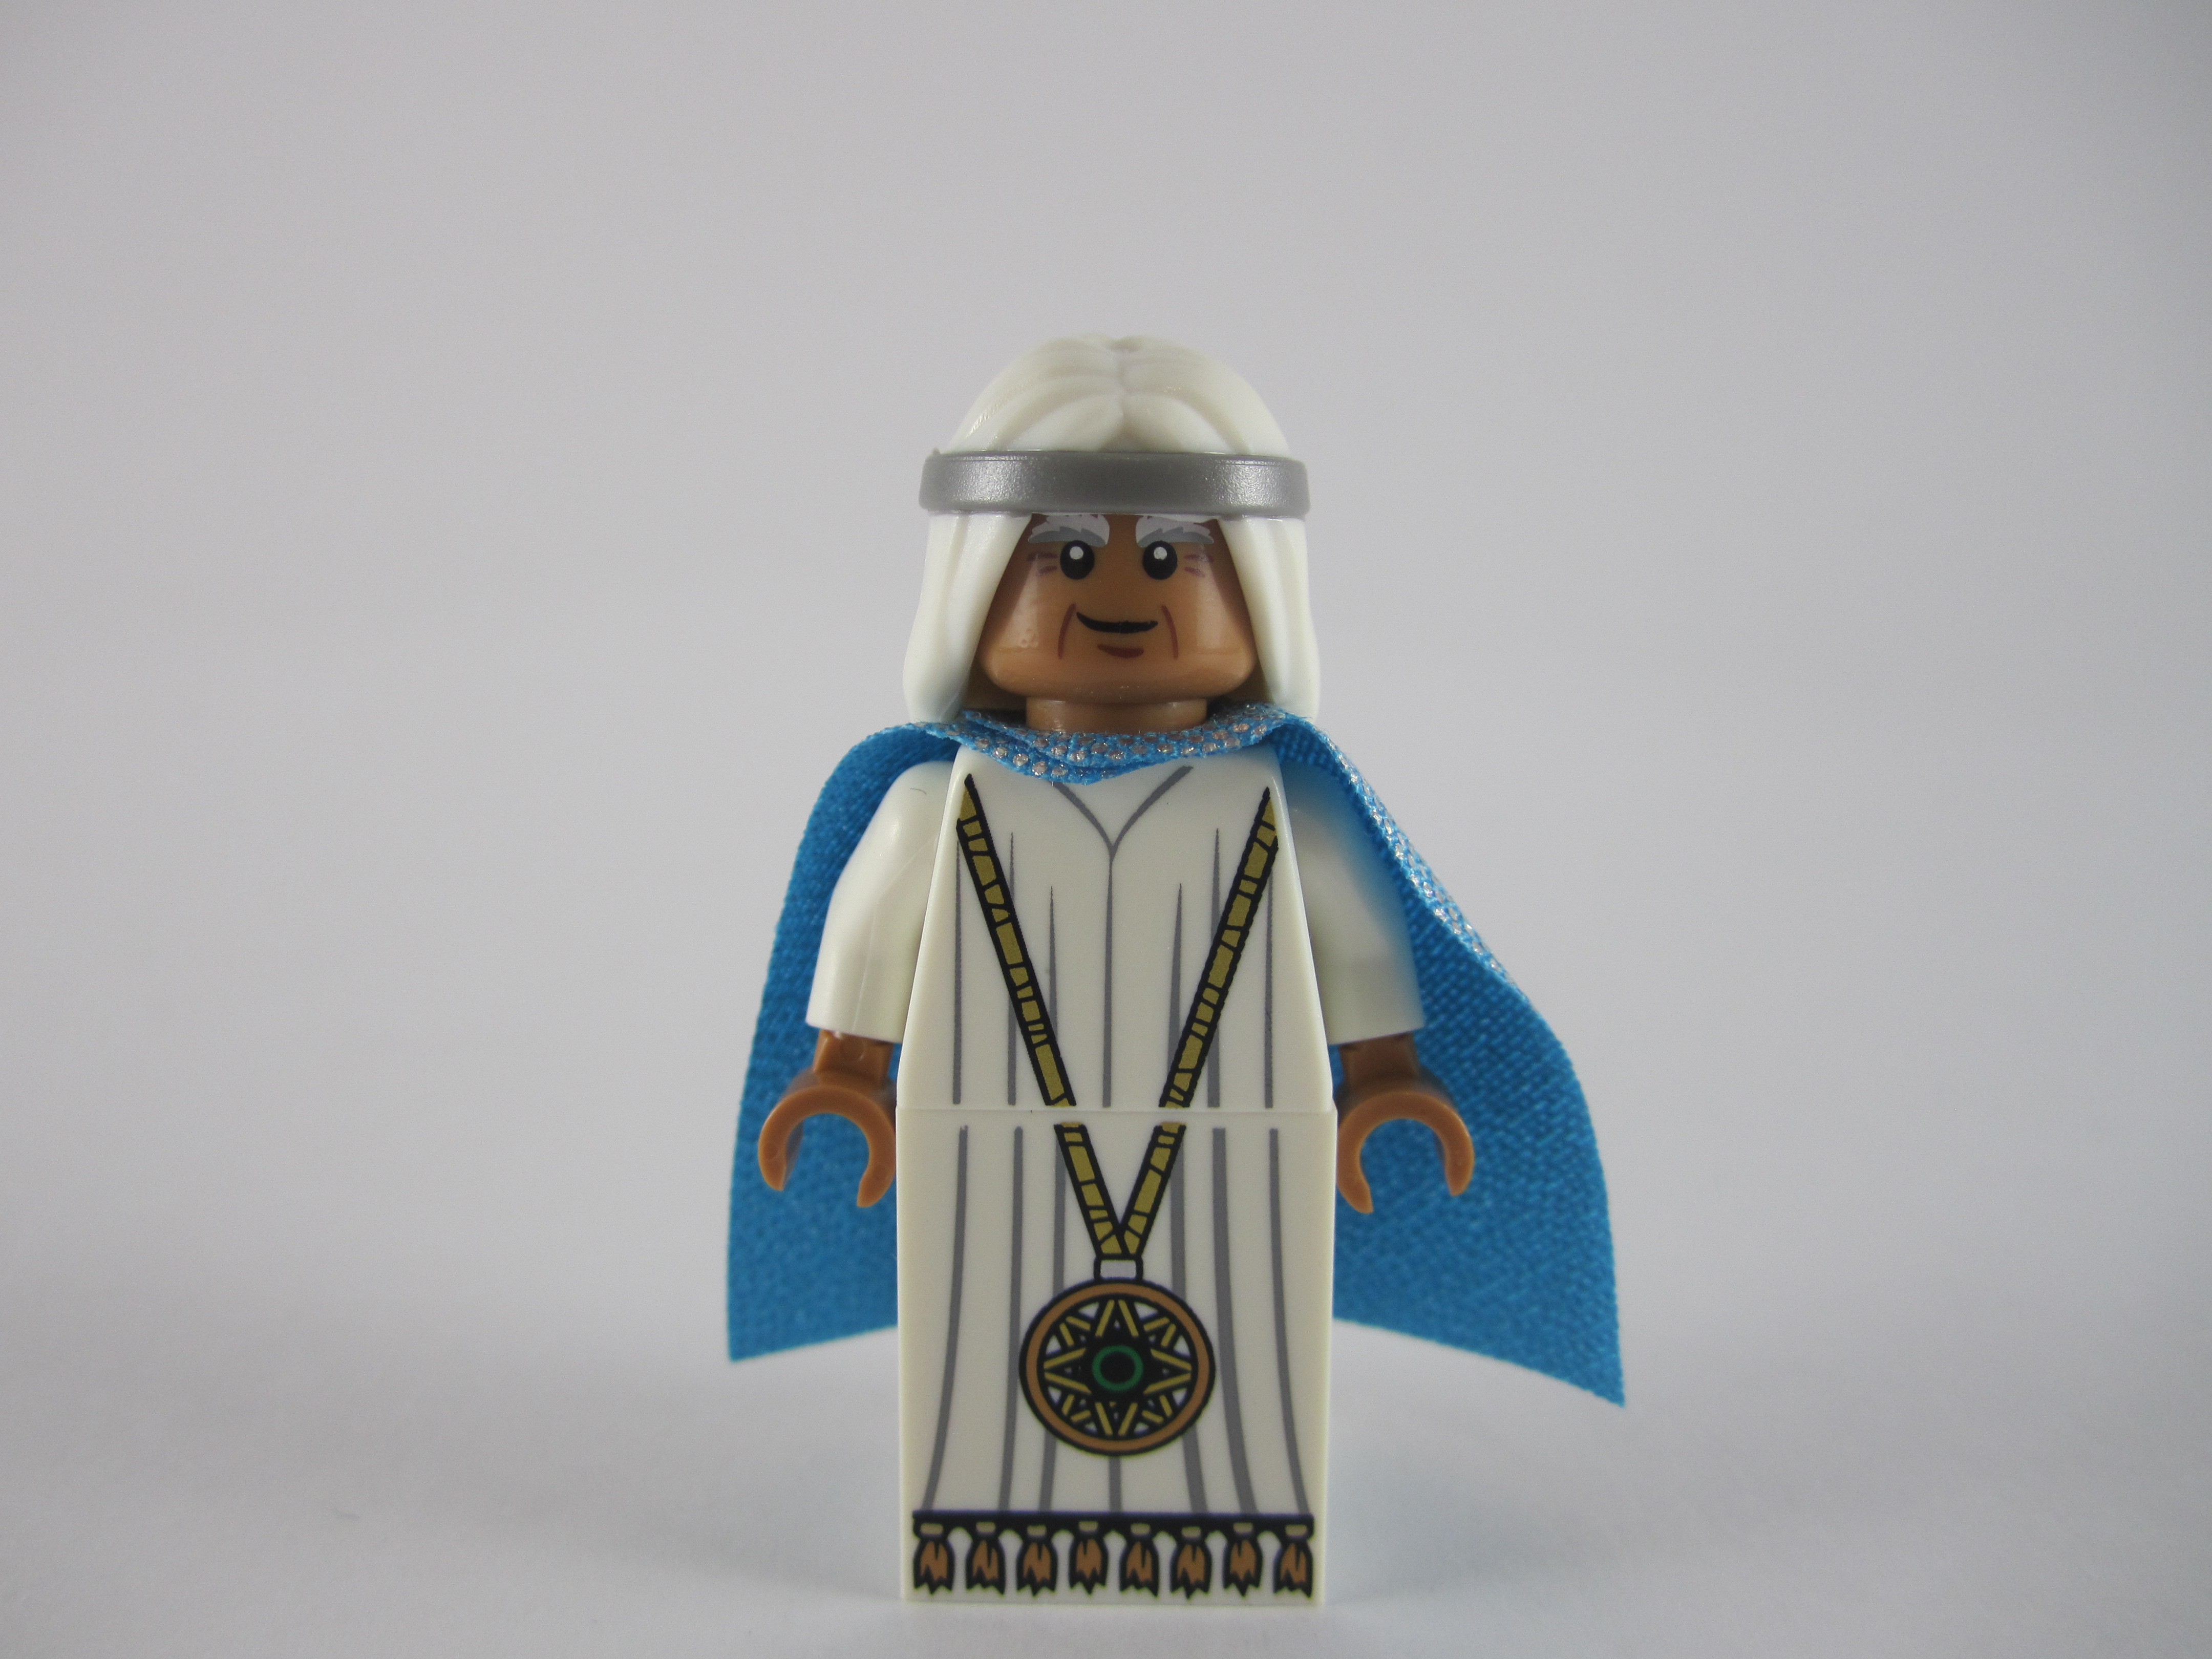 LEGO Rare Exclusive Minifig Young Vitruvius with Medallion New /& Sealed